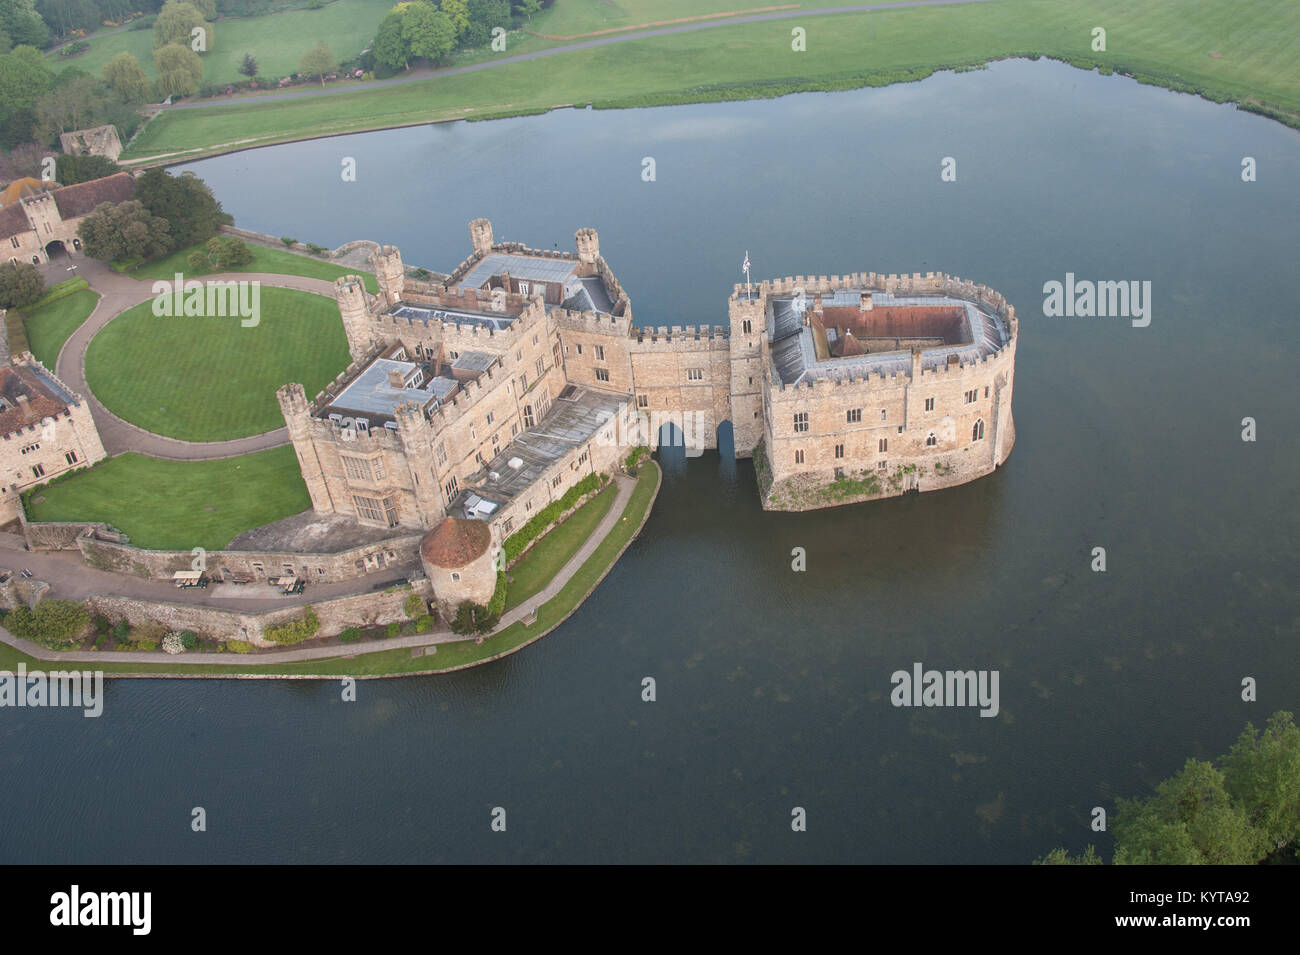 Leeds Castle, near Maidstone, Kent, UK is viewed from a hot air ballon very early in the morning - Stock Image